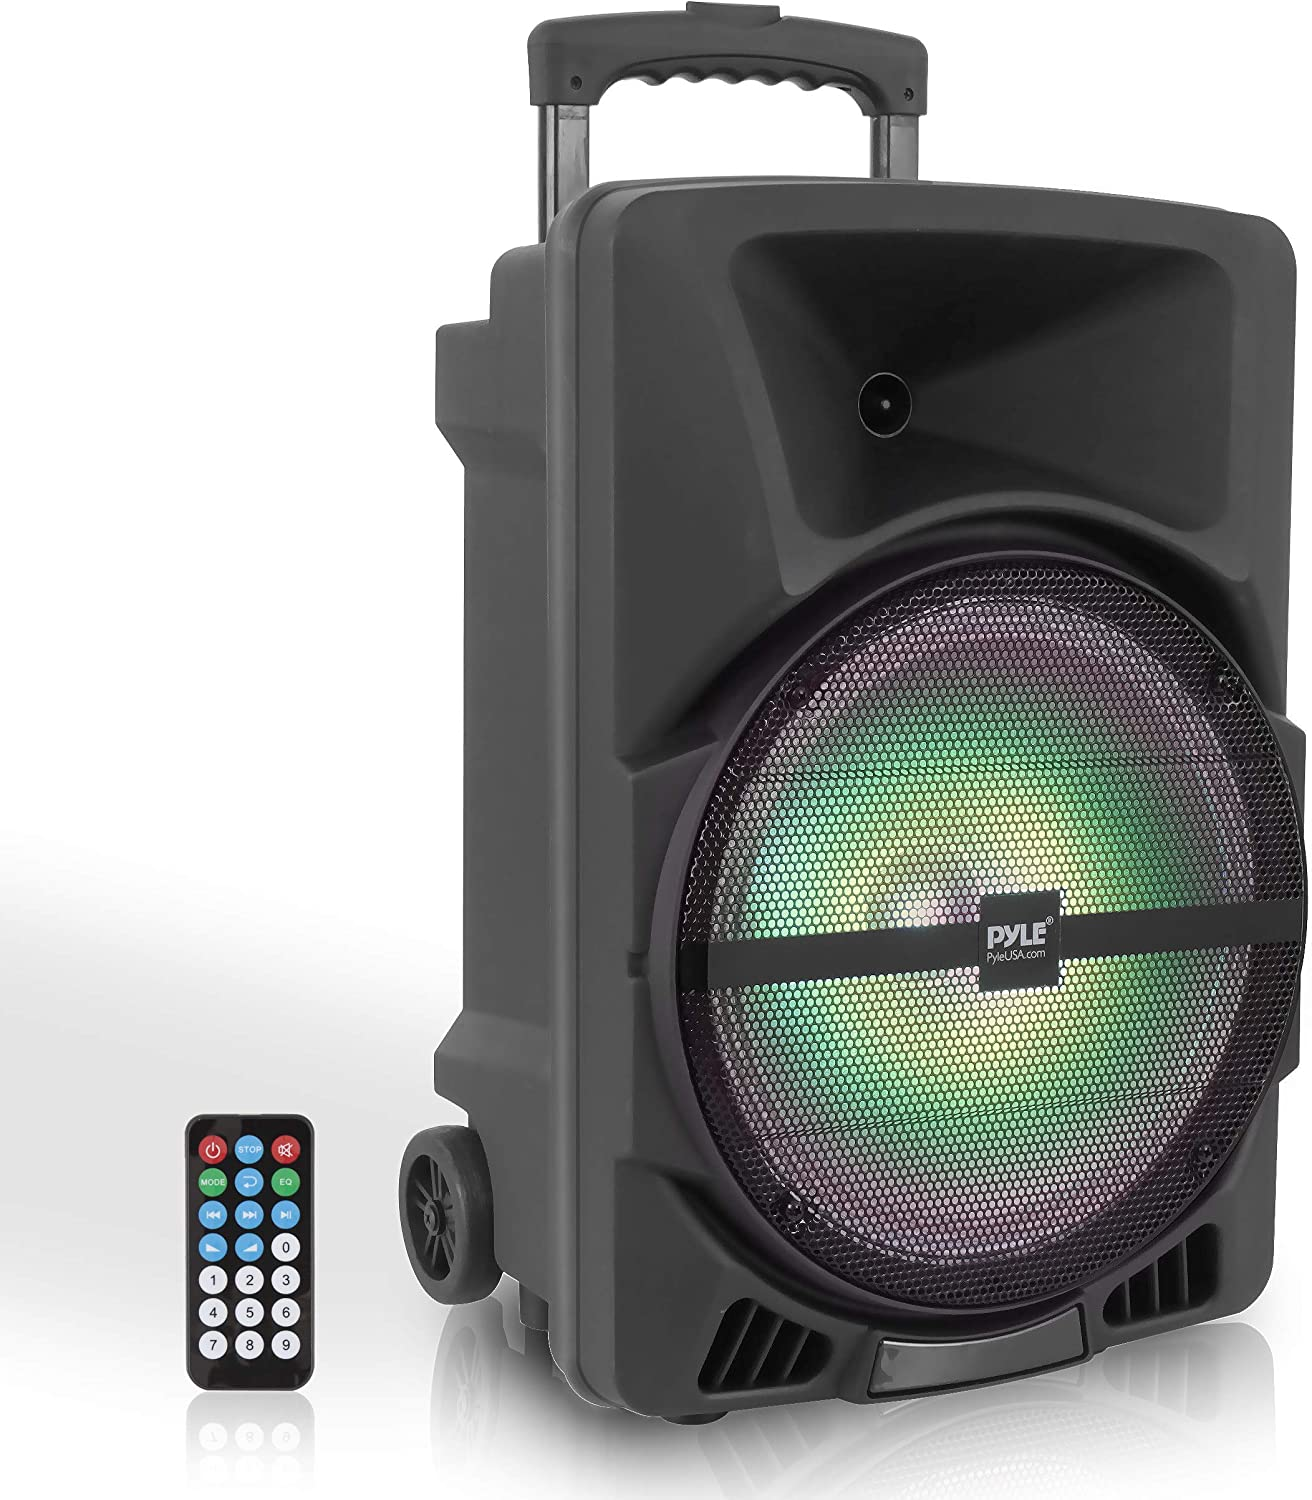 Pyle Wireless Portable PA Speaker System - 10W High Powered Bluetooth  Compatible Indoor & Outdoor DJ Sound Stereo Loudspeaker w/USB SD MP10 AUX  10.10mm